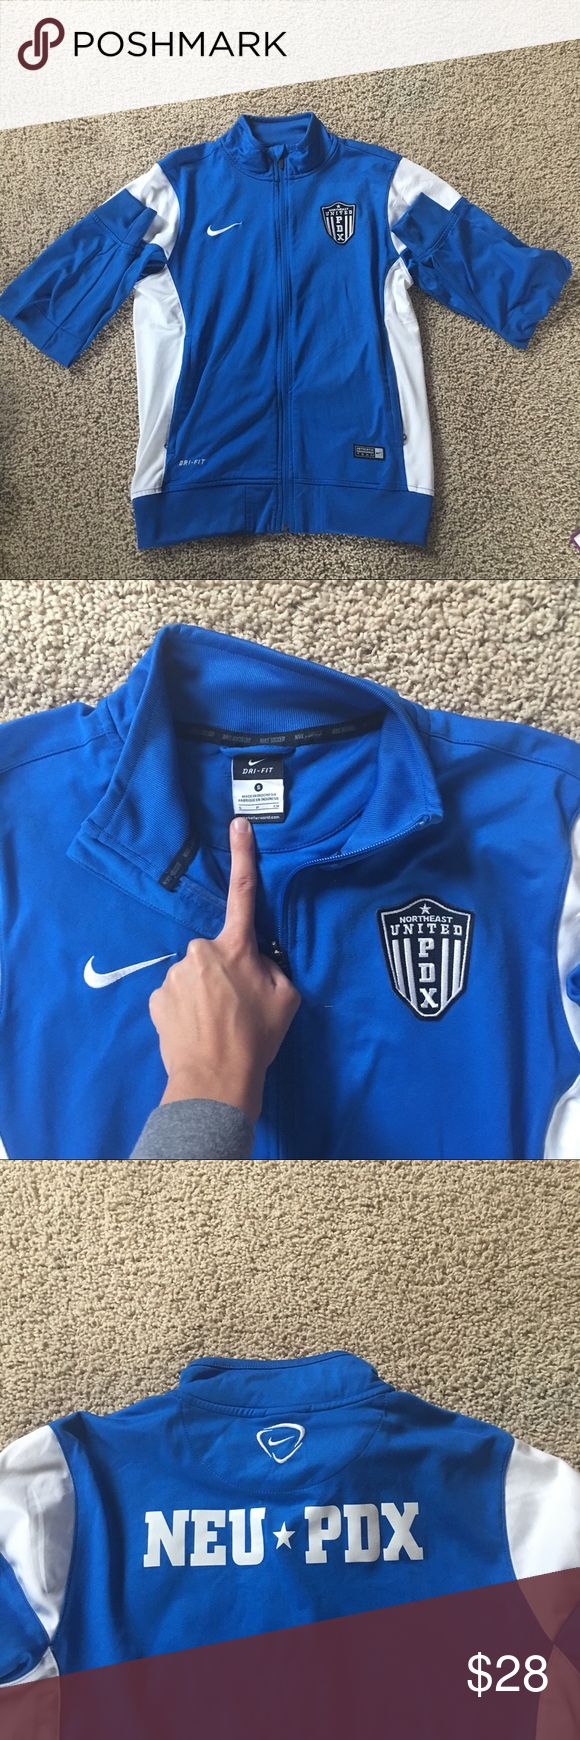 Men's Nike Pdx Zip Up Jacket Northeast united pdx blue and white Nike zip up jacket, dri-fit, Nike authentic team, MAKE AN OFFER Nike Sweaters Zip Up